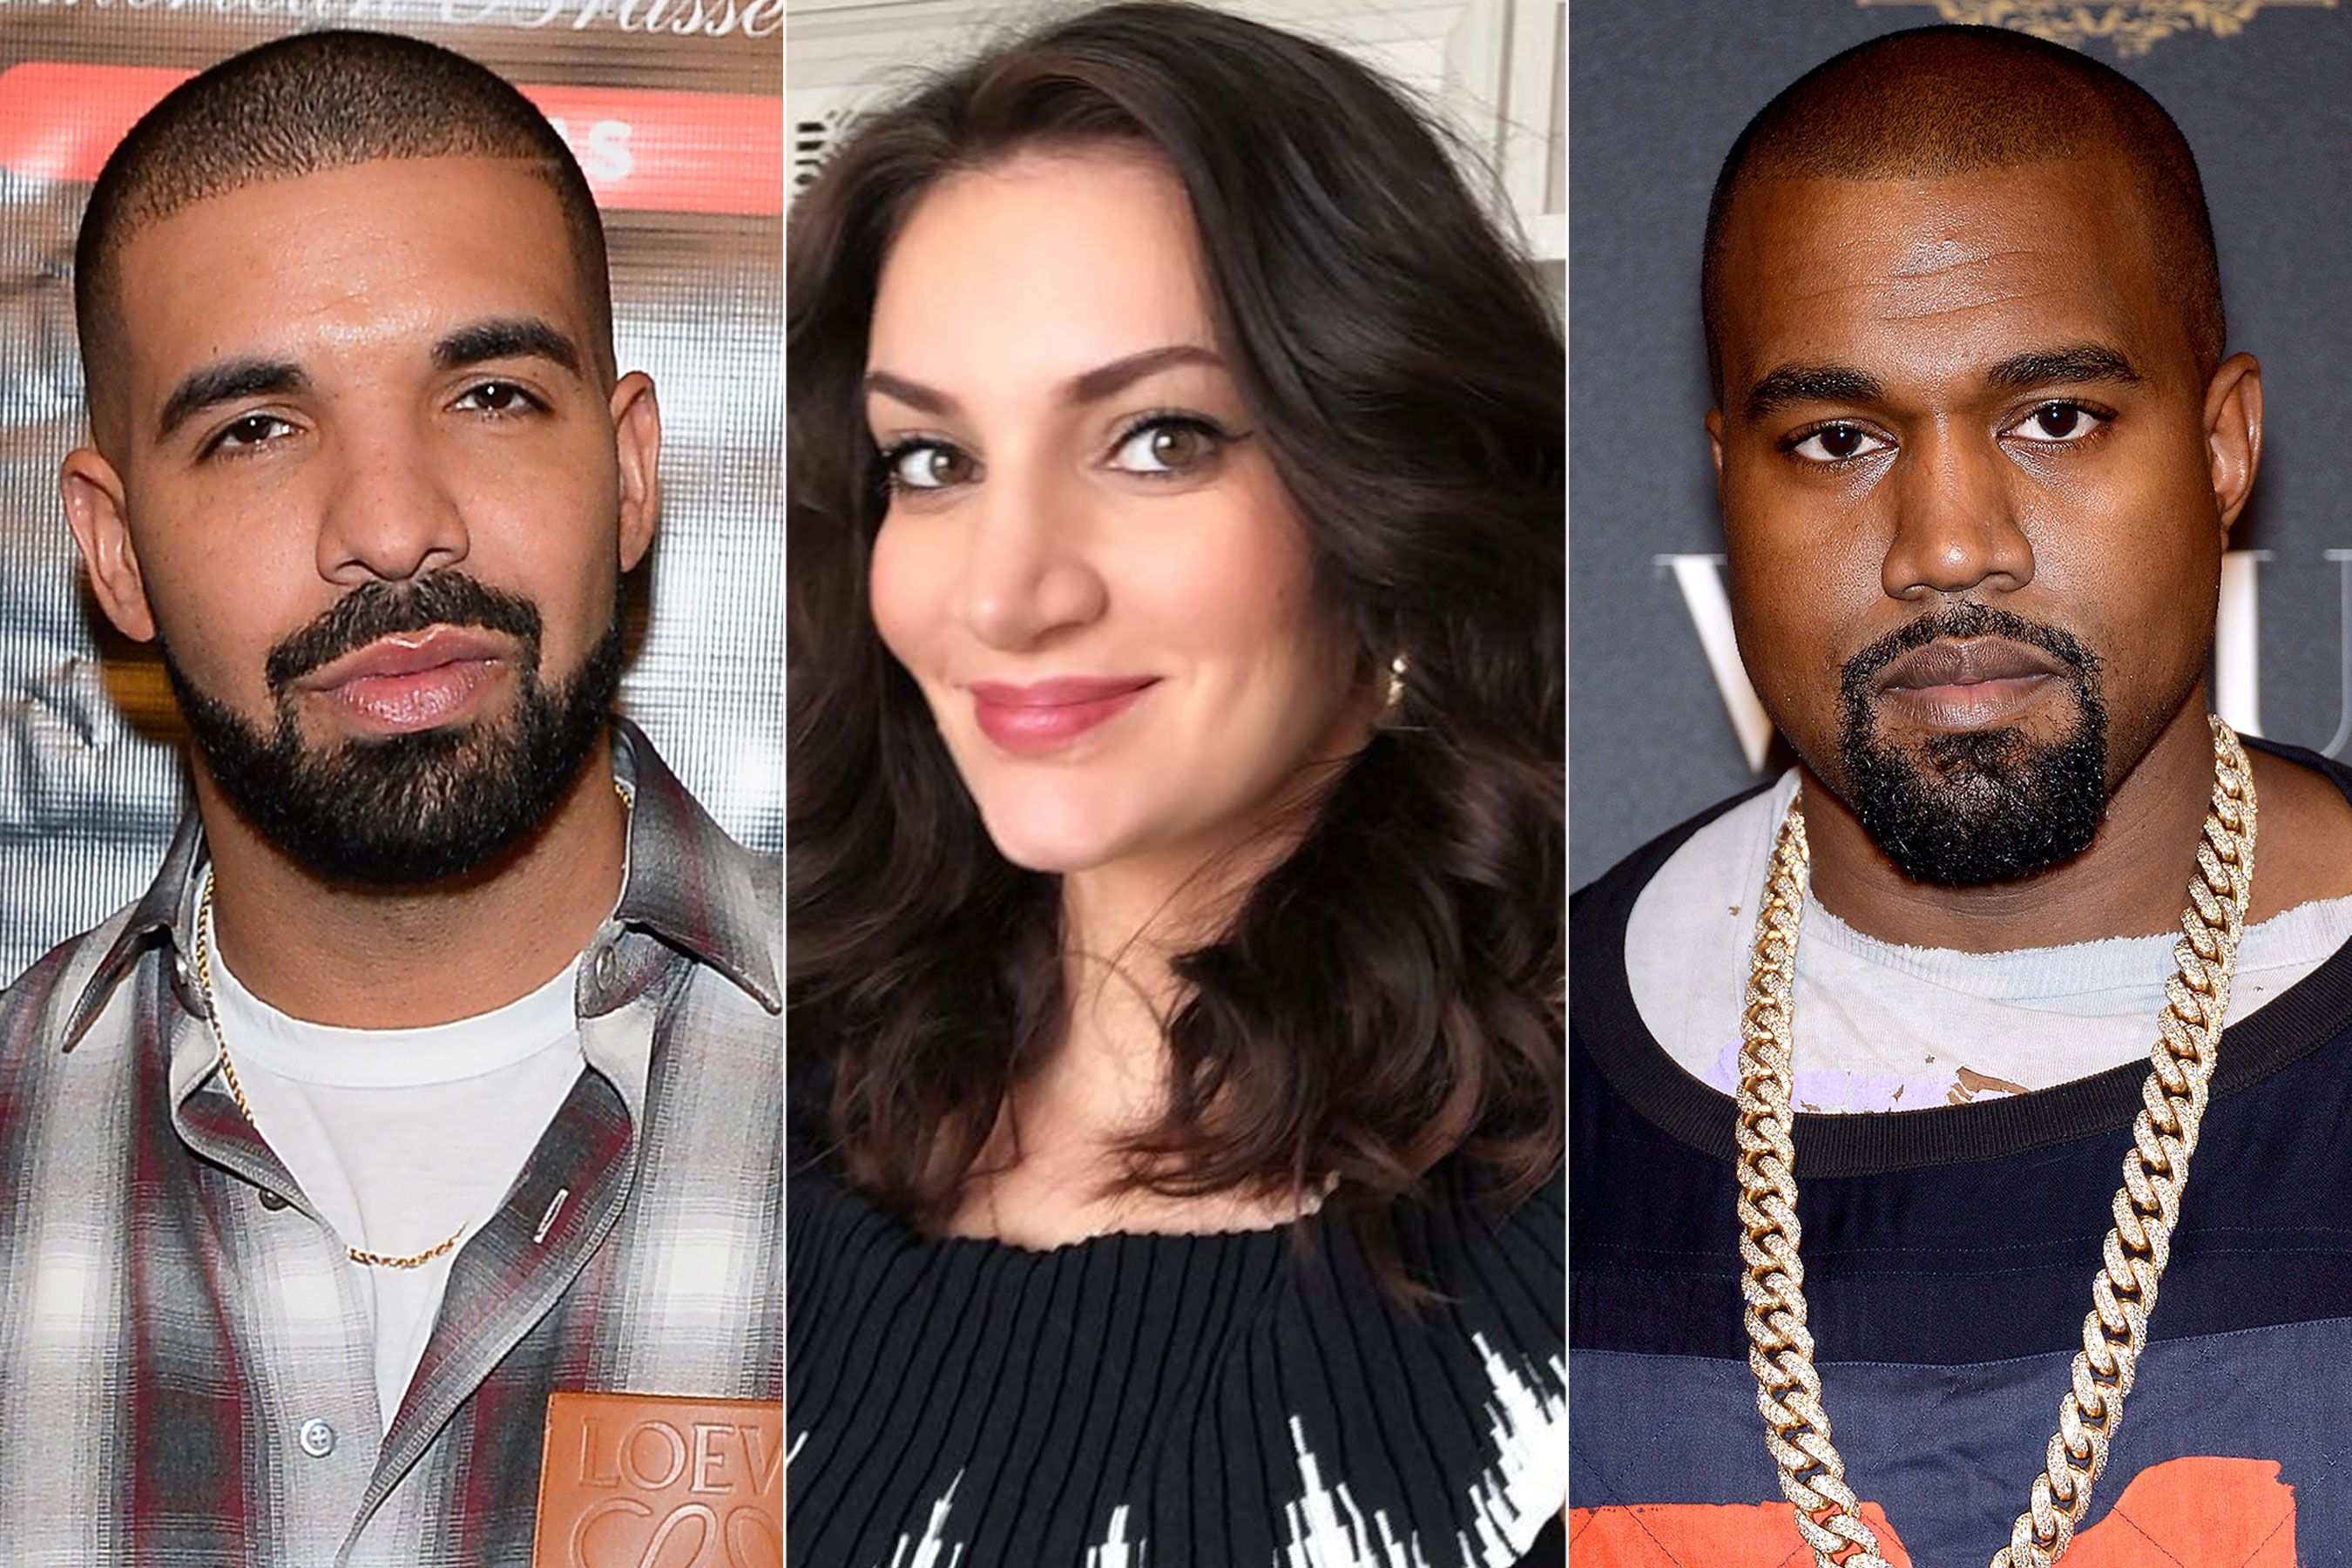 Sophie Brussaux The Mother Of Drake S Child Criticizes Kanye West Amid Rappers Ongoing Feud Kanye West Kanye Drake